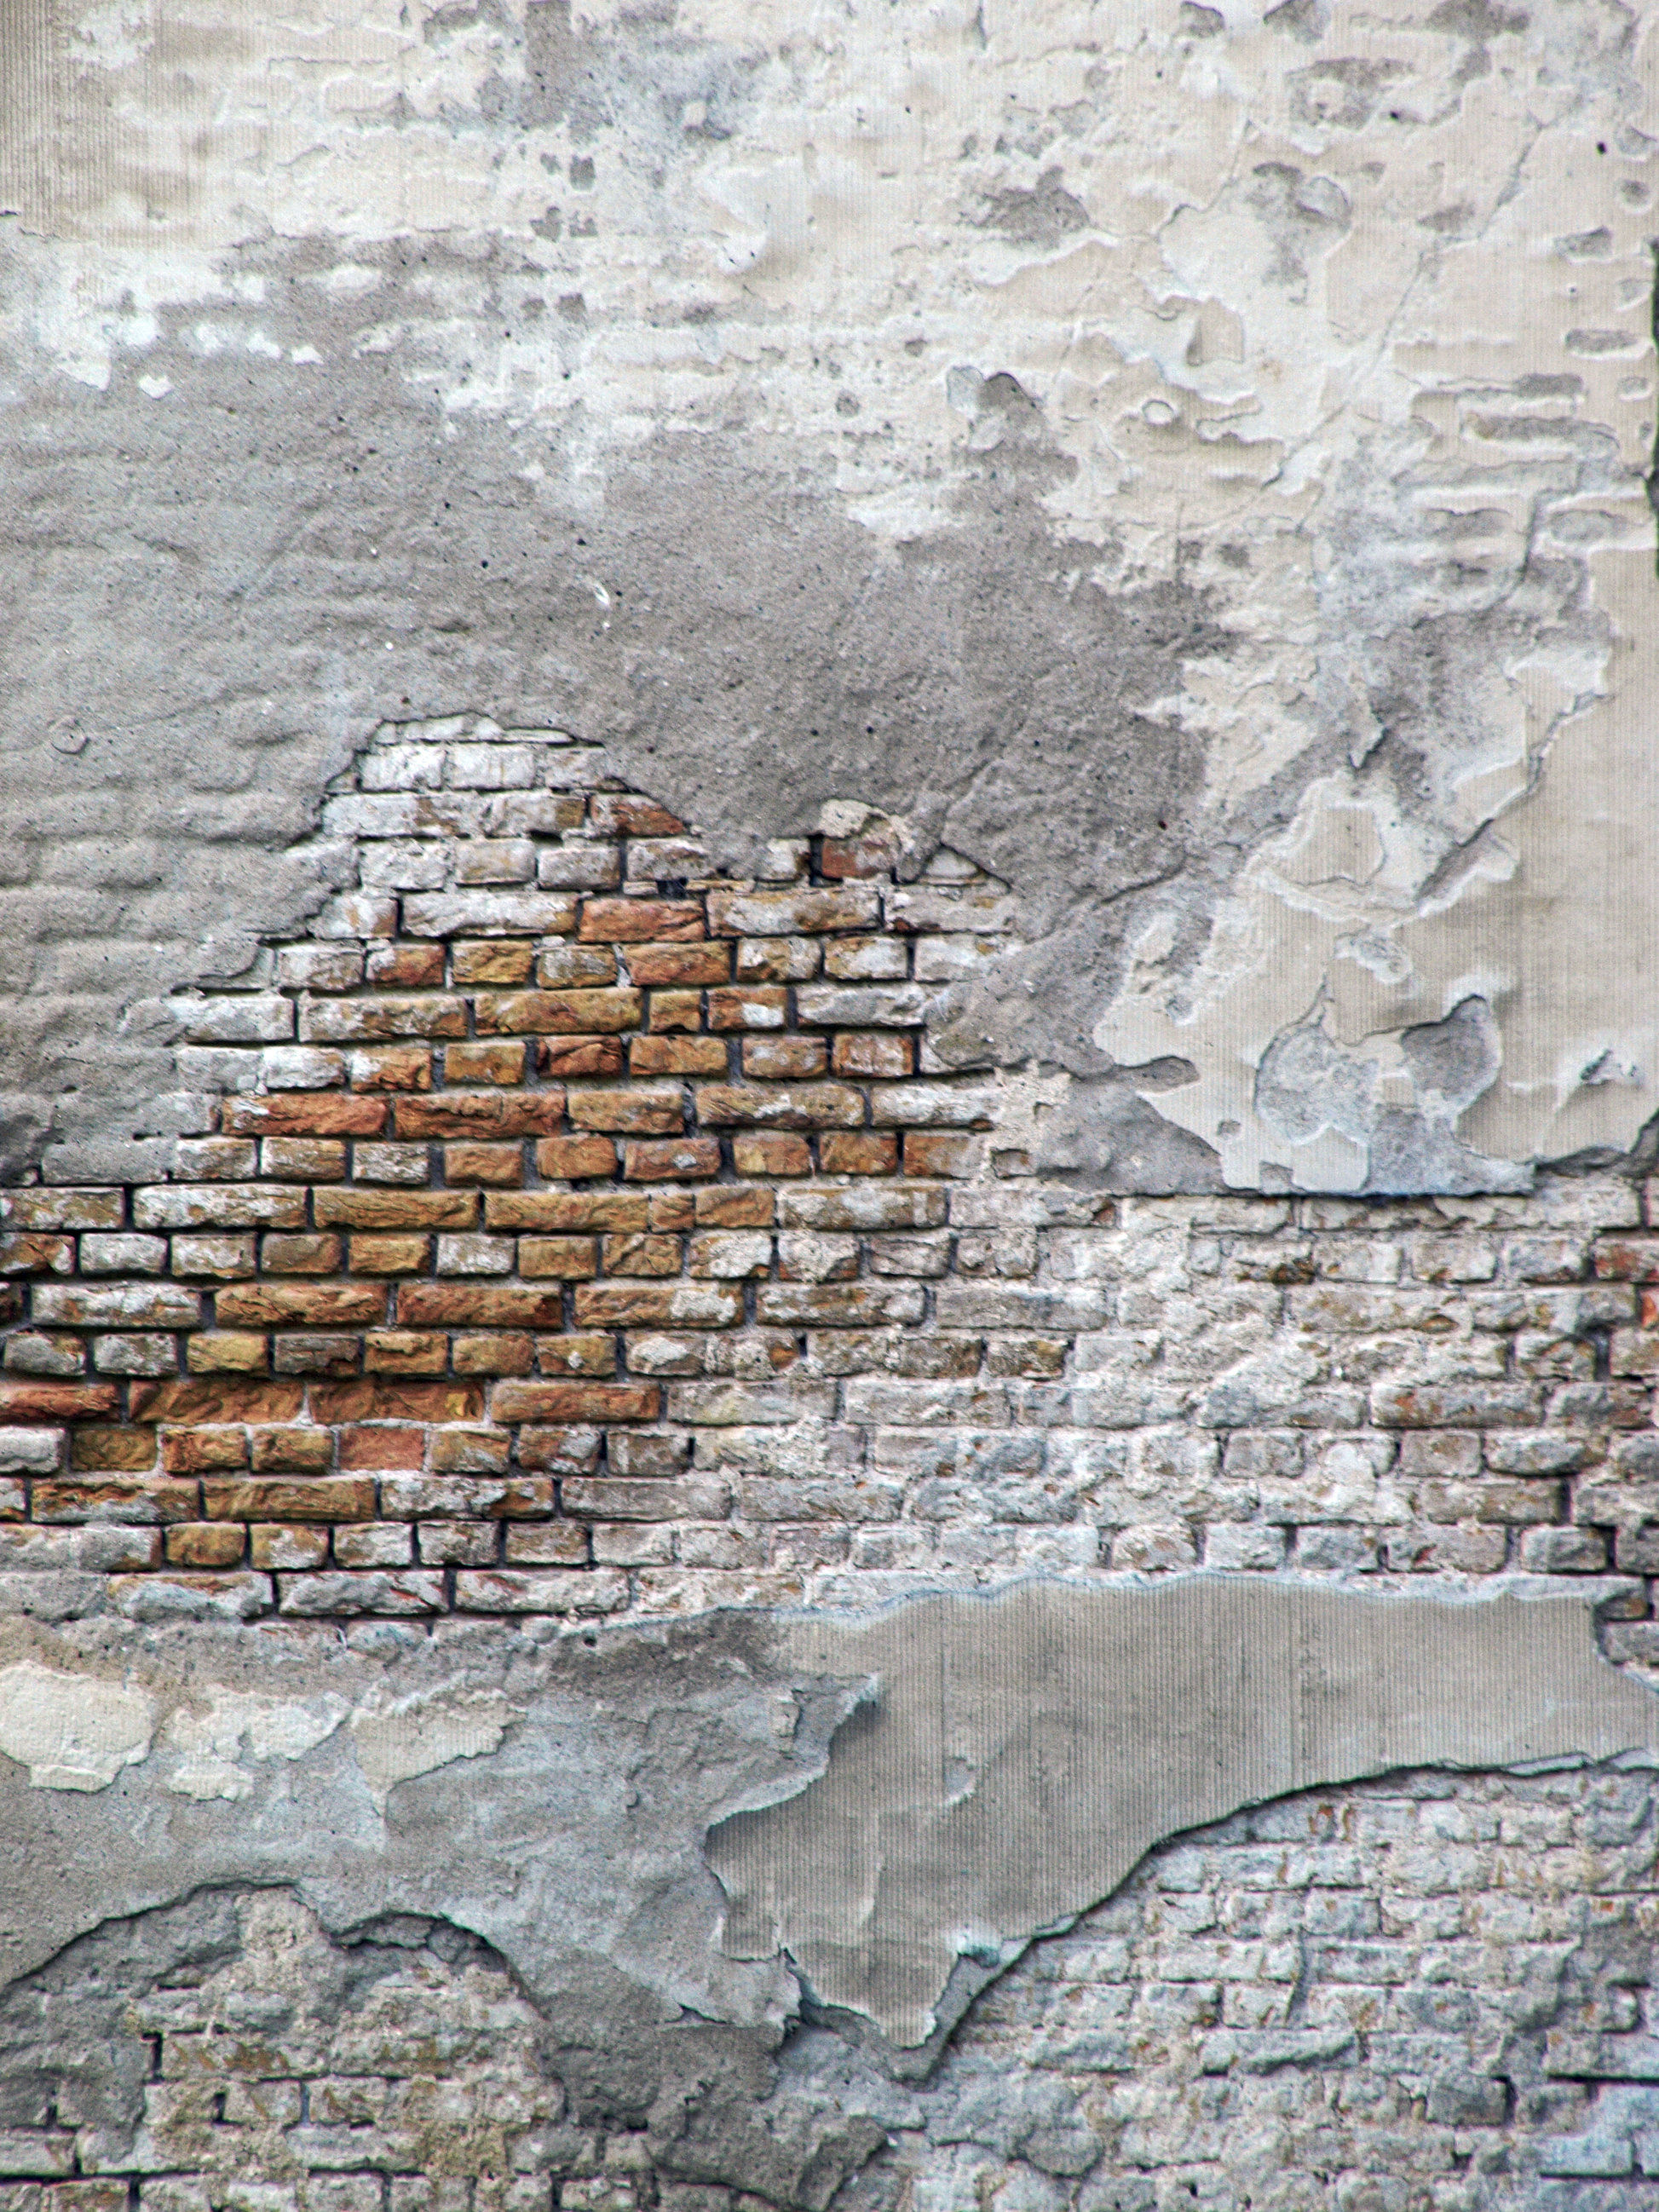 Breaking Down Walls Through Humility